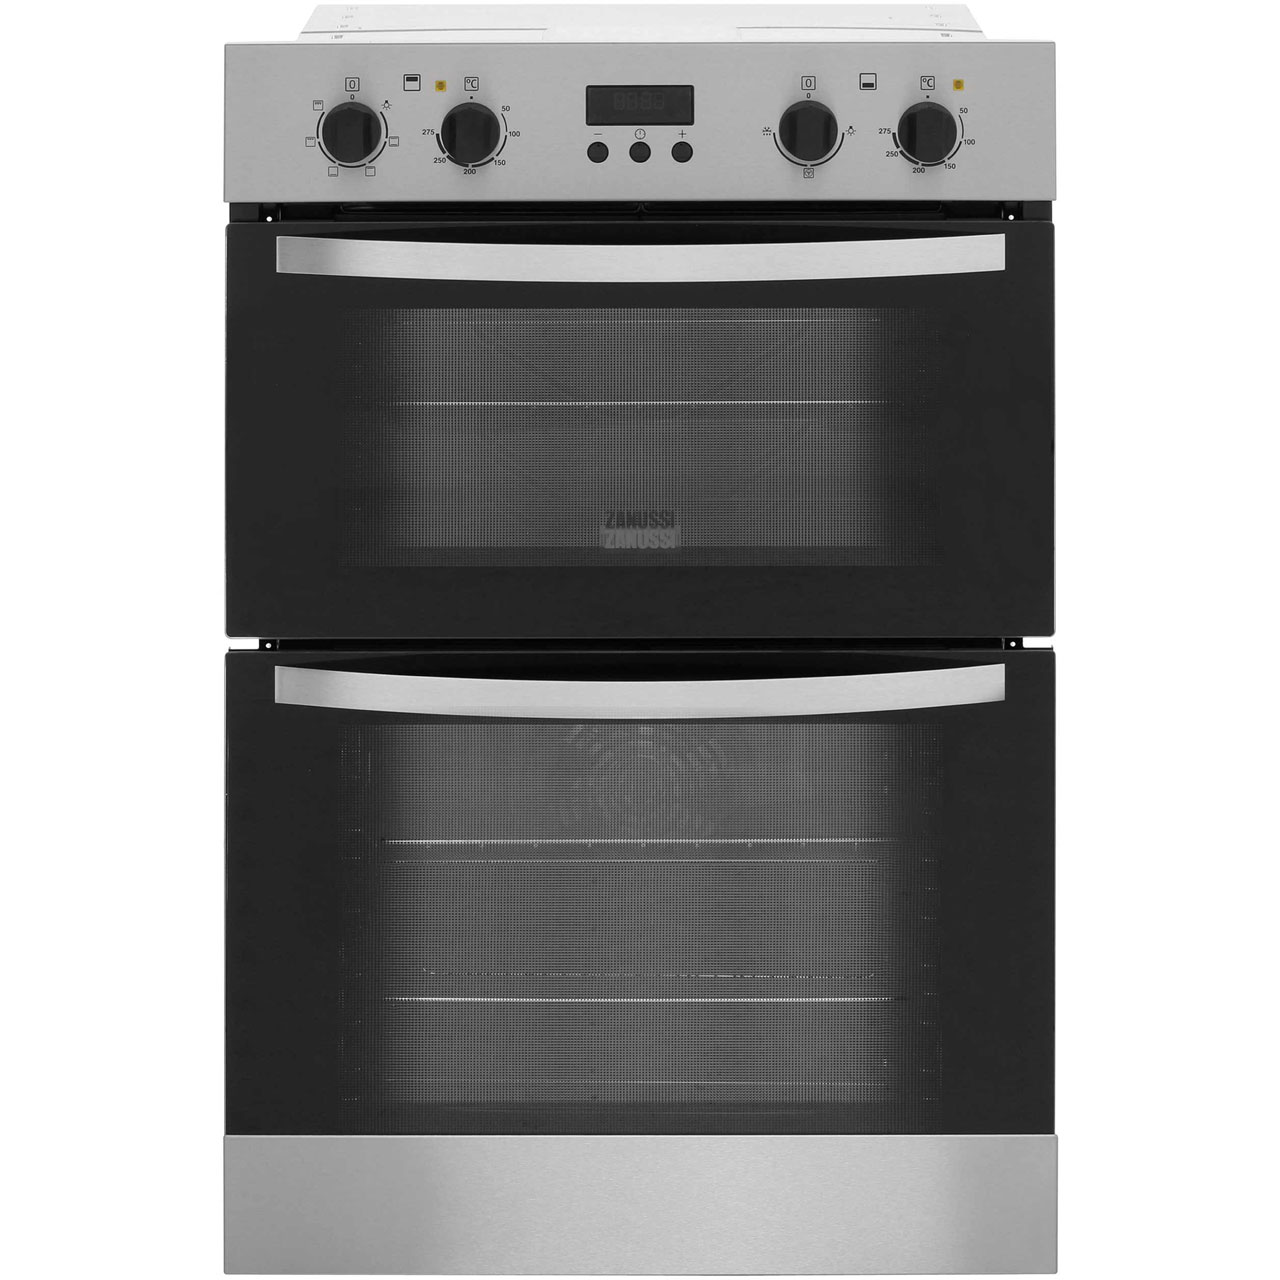 Zanussi ZOD35517DX Integrated Double Oven in Stainless Steel